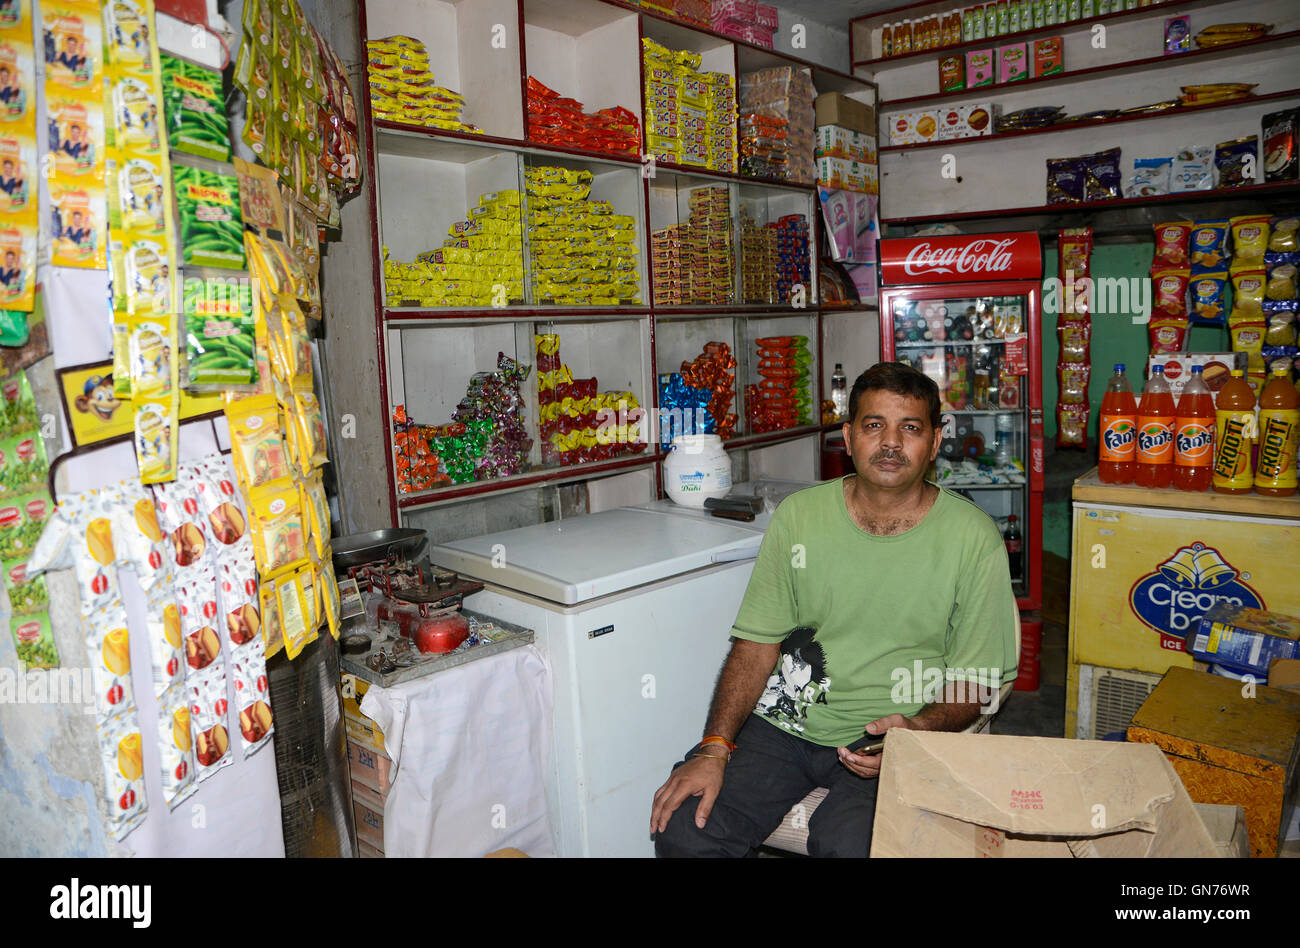 Indian Grocery shop Stock Photo: 116329075 - Alamy